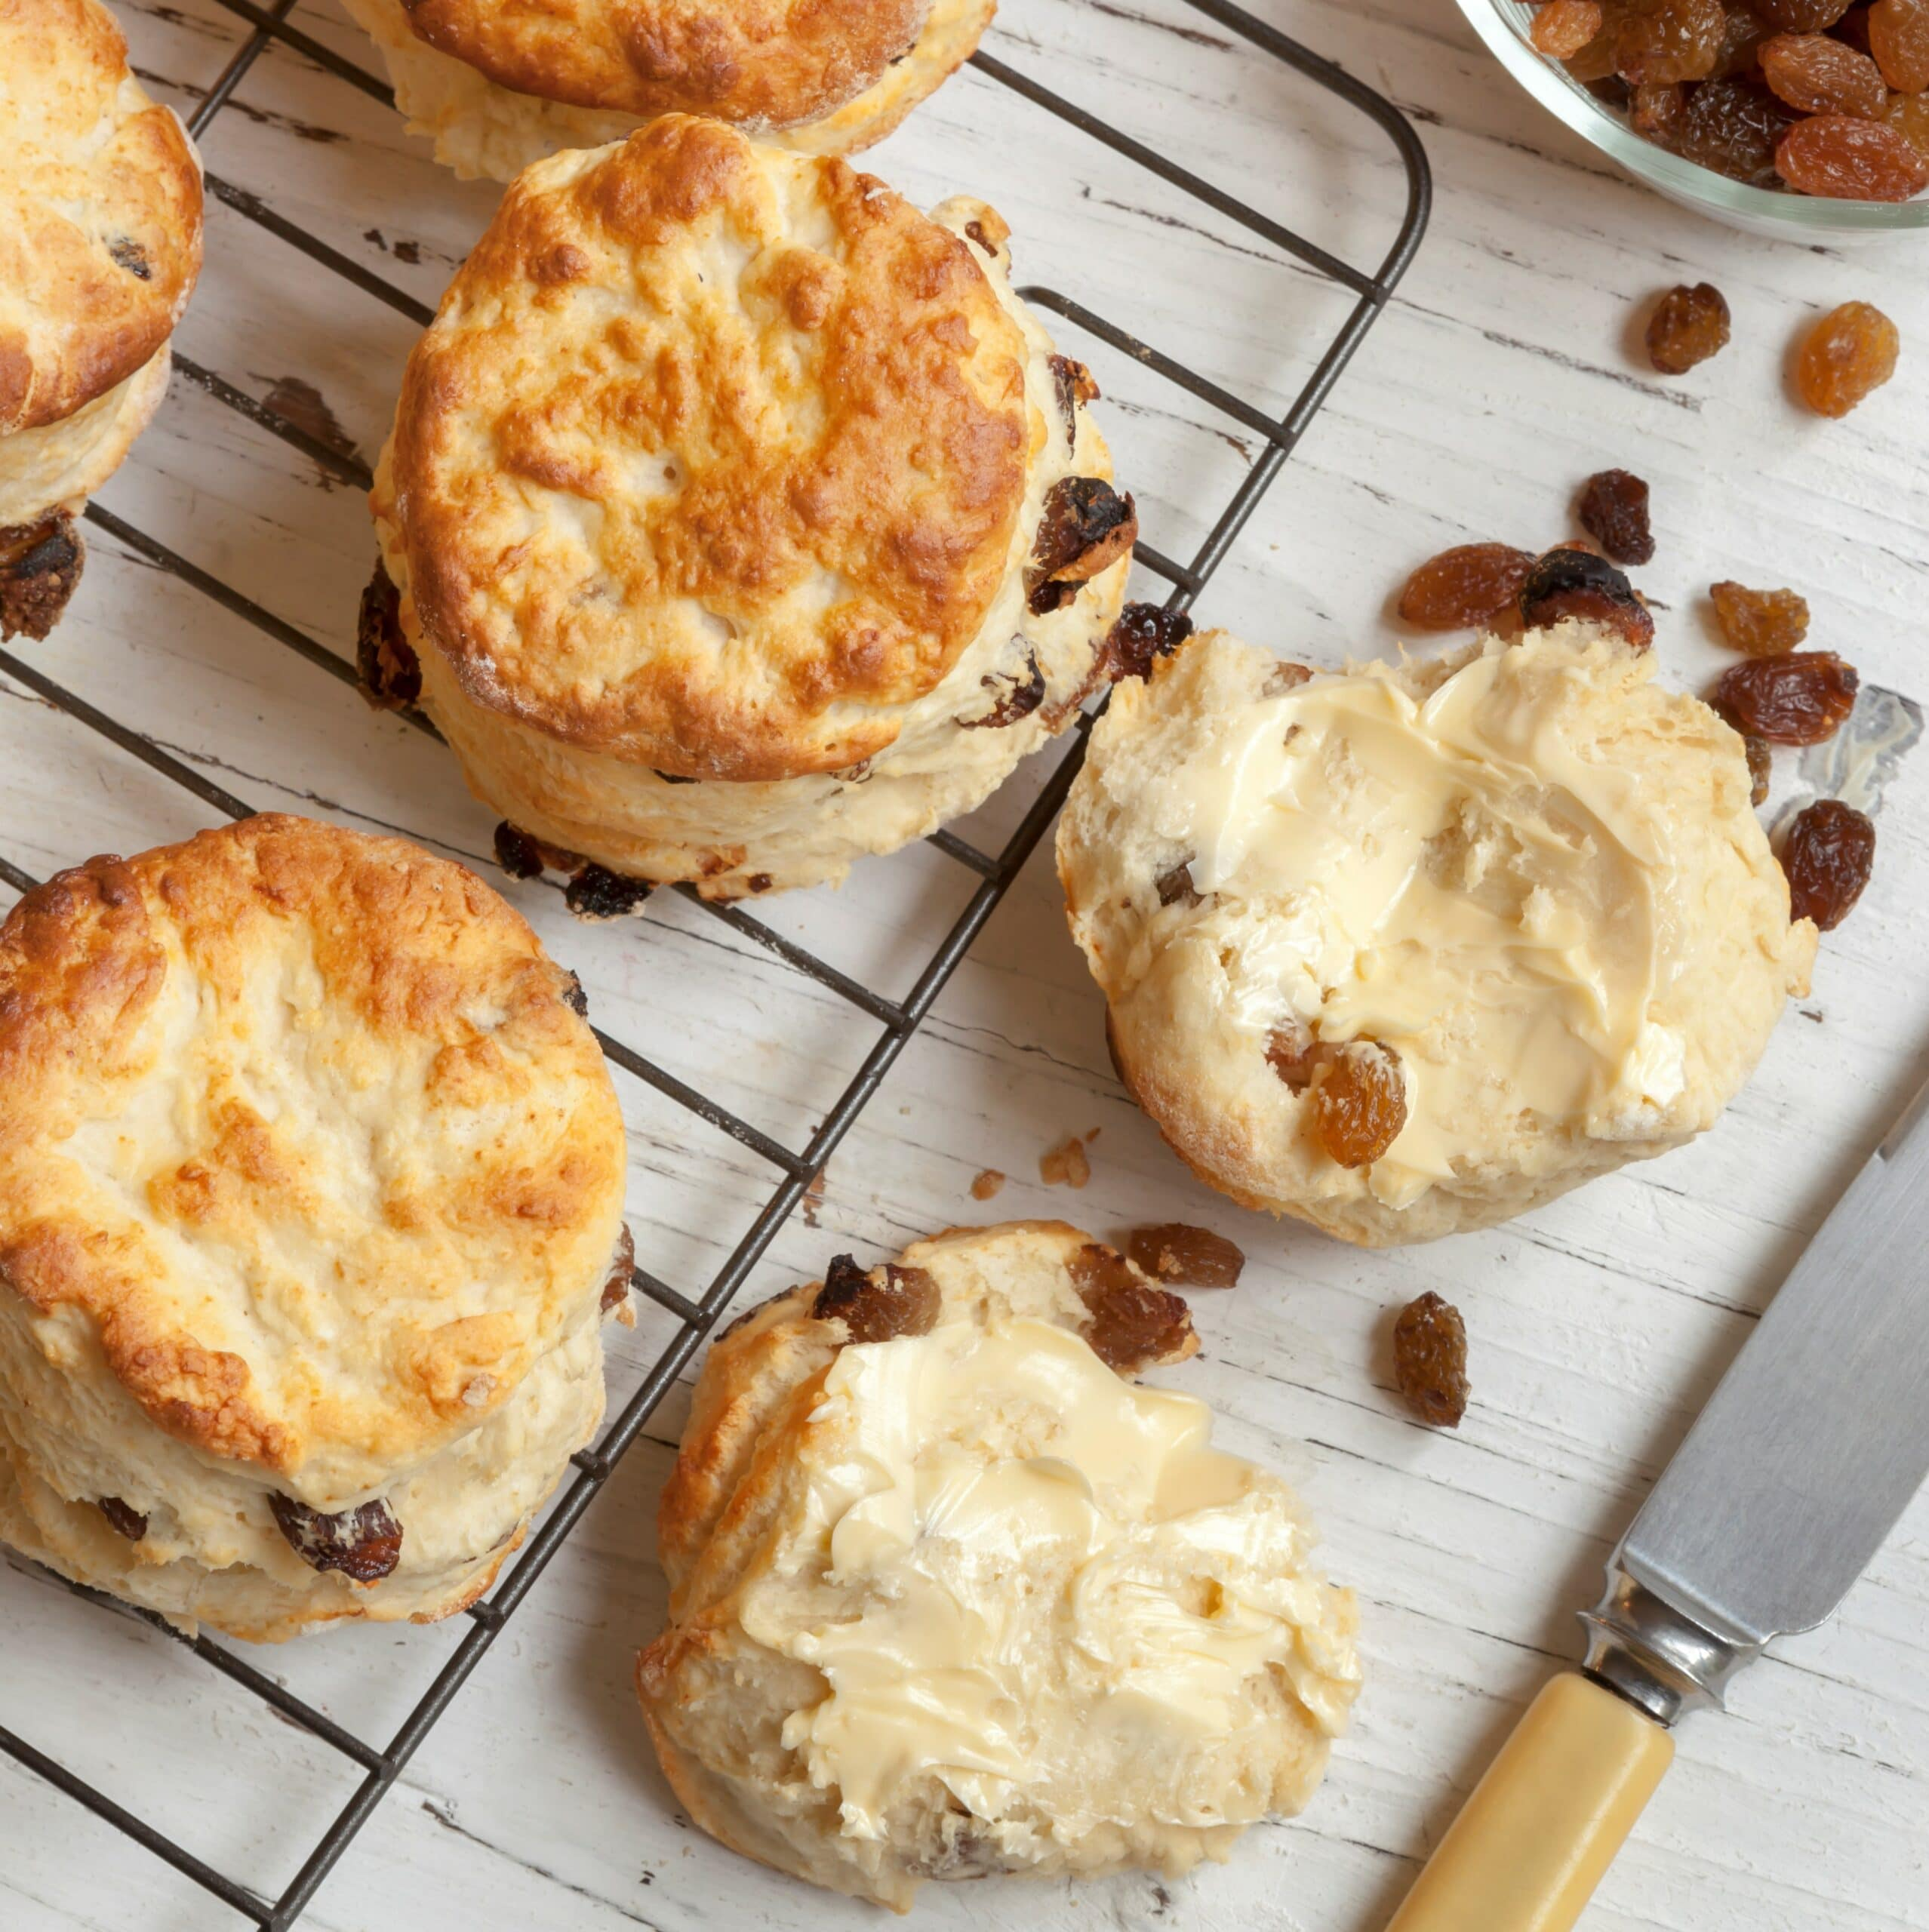 Where to find the best Fruit Scone Recipe UK